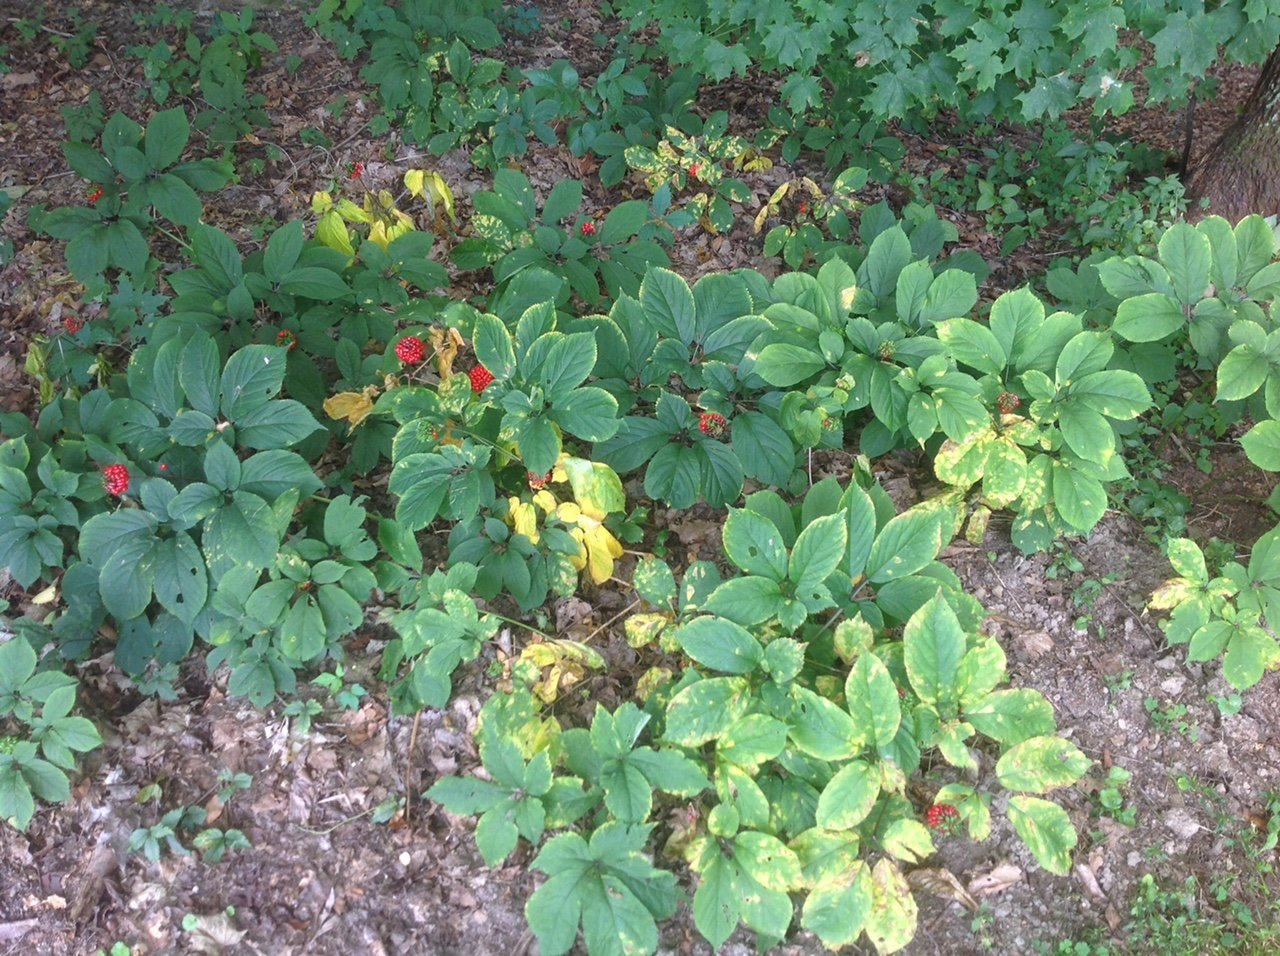 1000 American Ginseng Seeds-Stratisfied 2019 Ready to Plant Now by panax quinquefolius